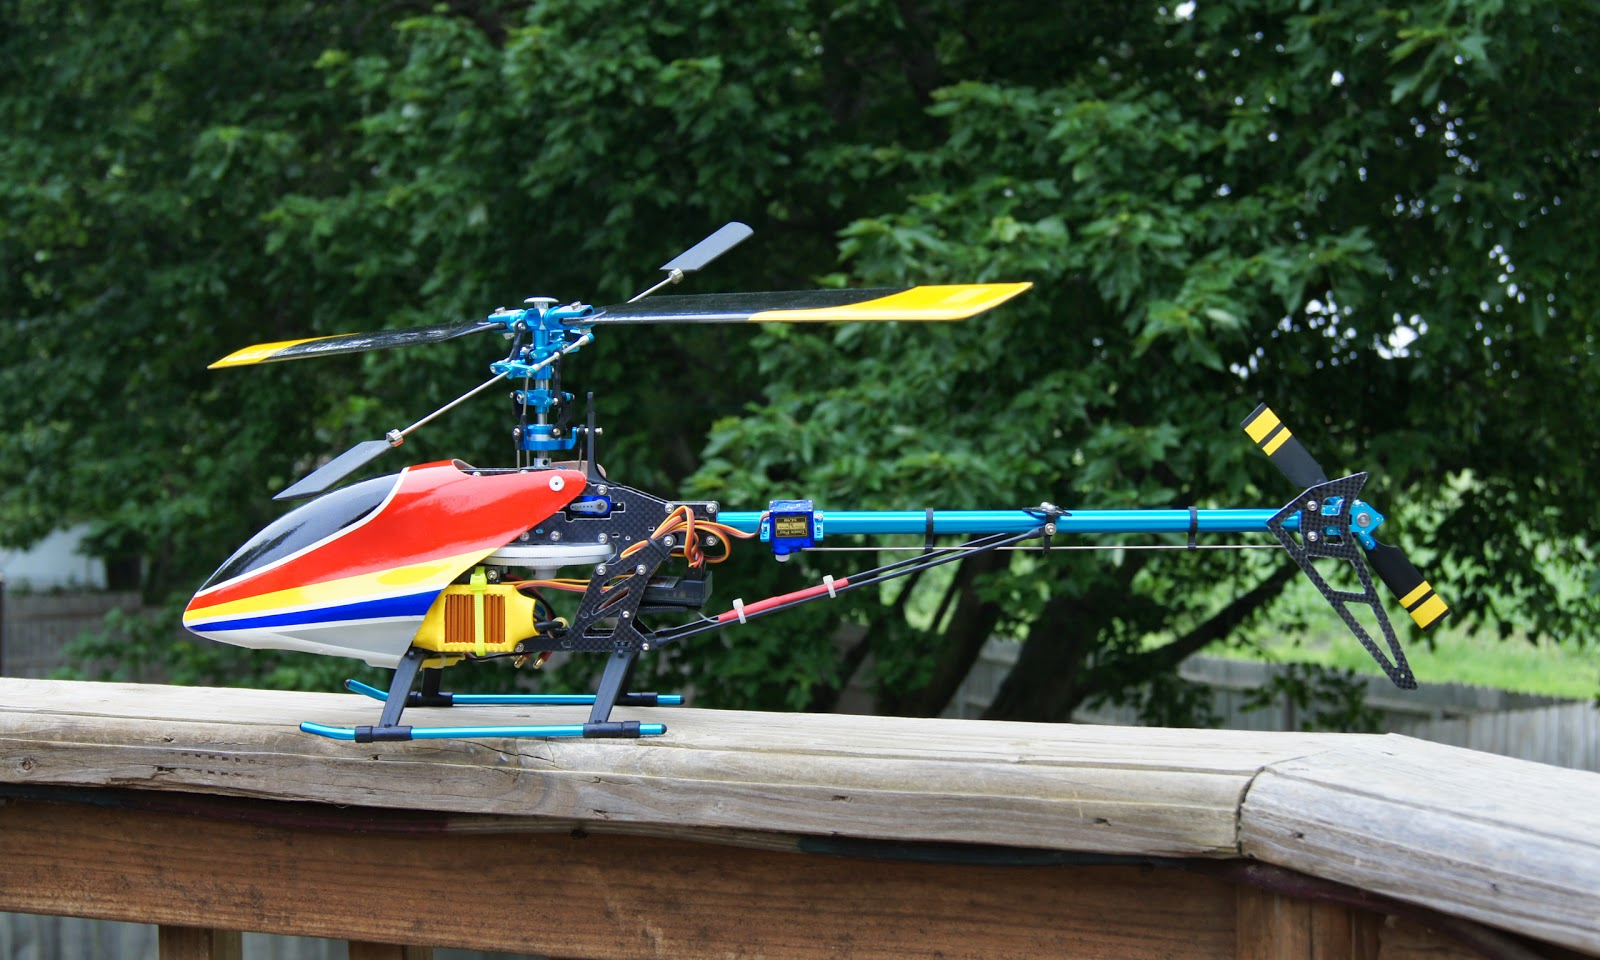 woody s time build a 450 sized helicopter for under a 100 hausler rh woodystime blogspot com